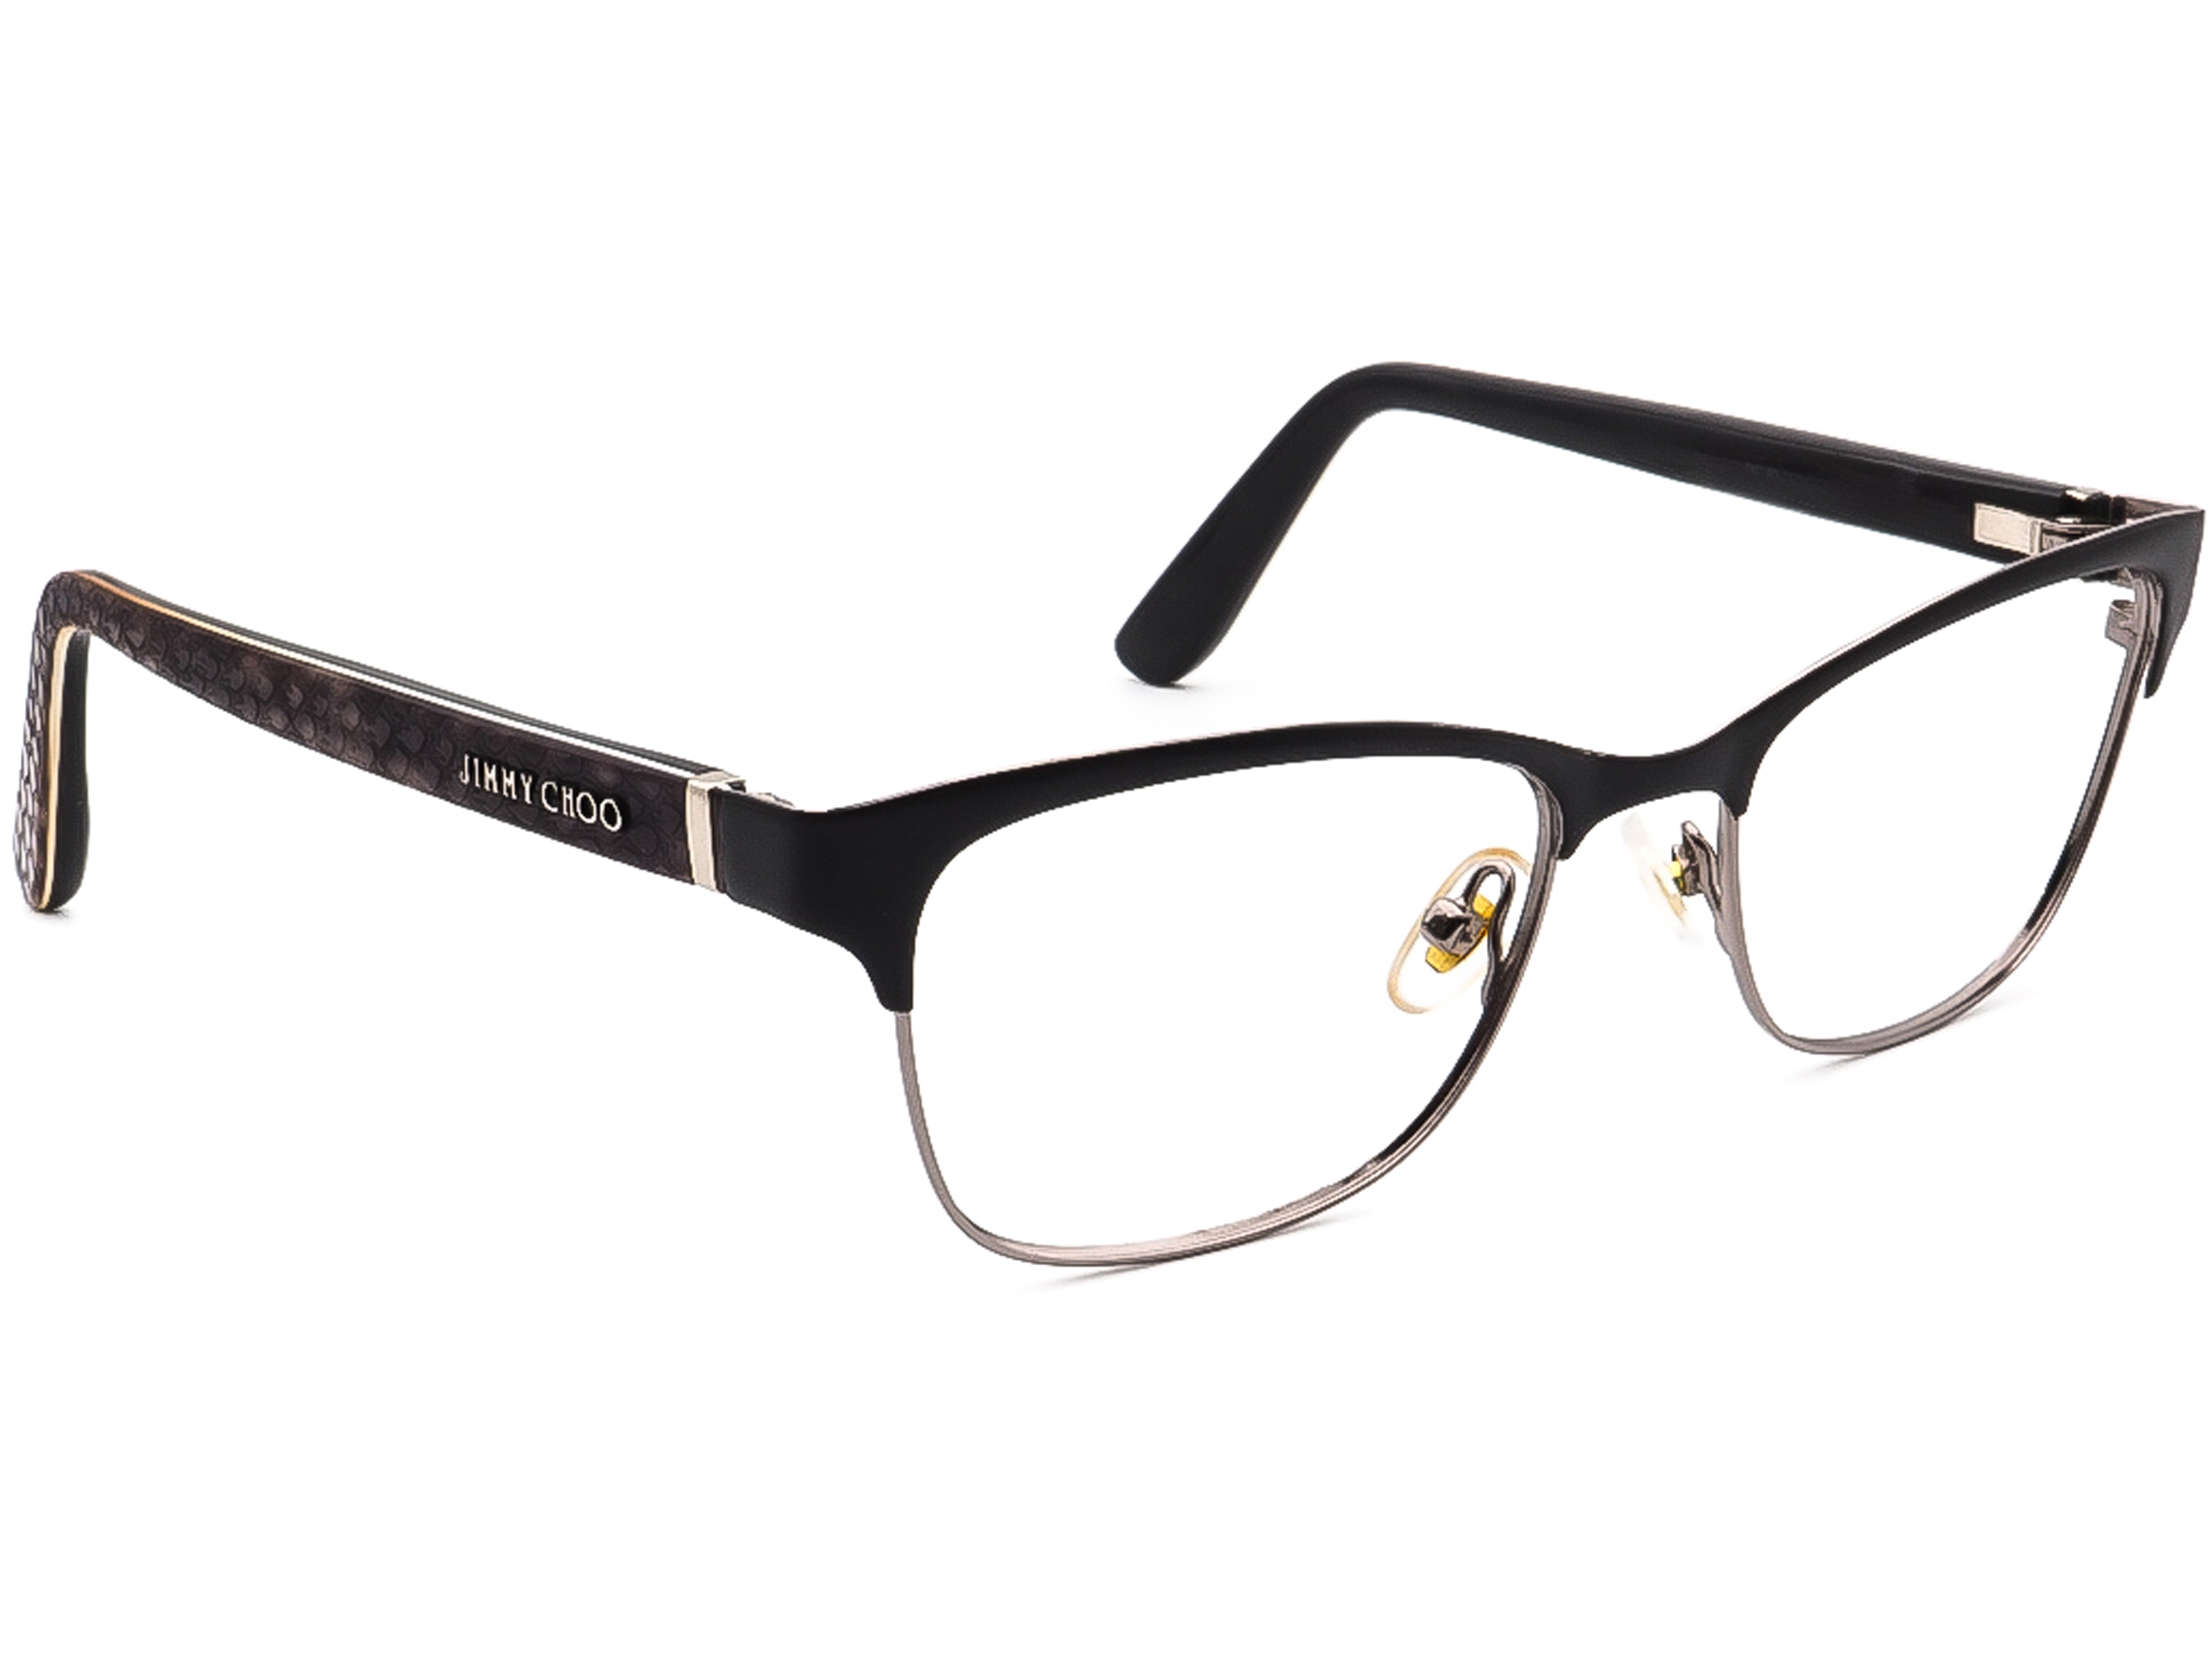 Jimmy Choo JC 99 6UO Eyeglasses